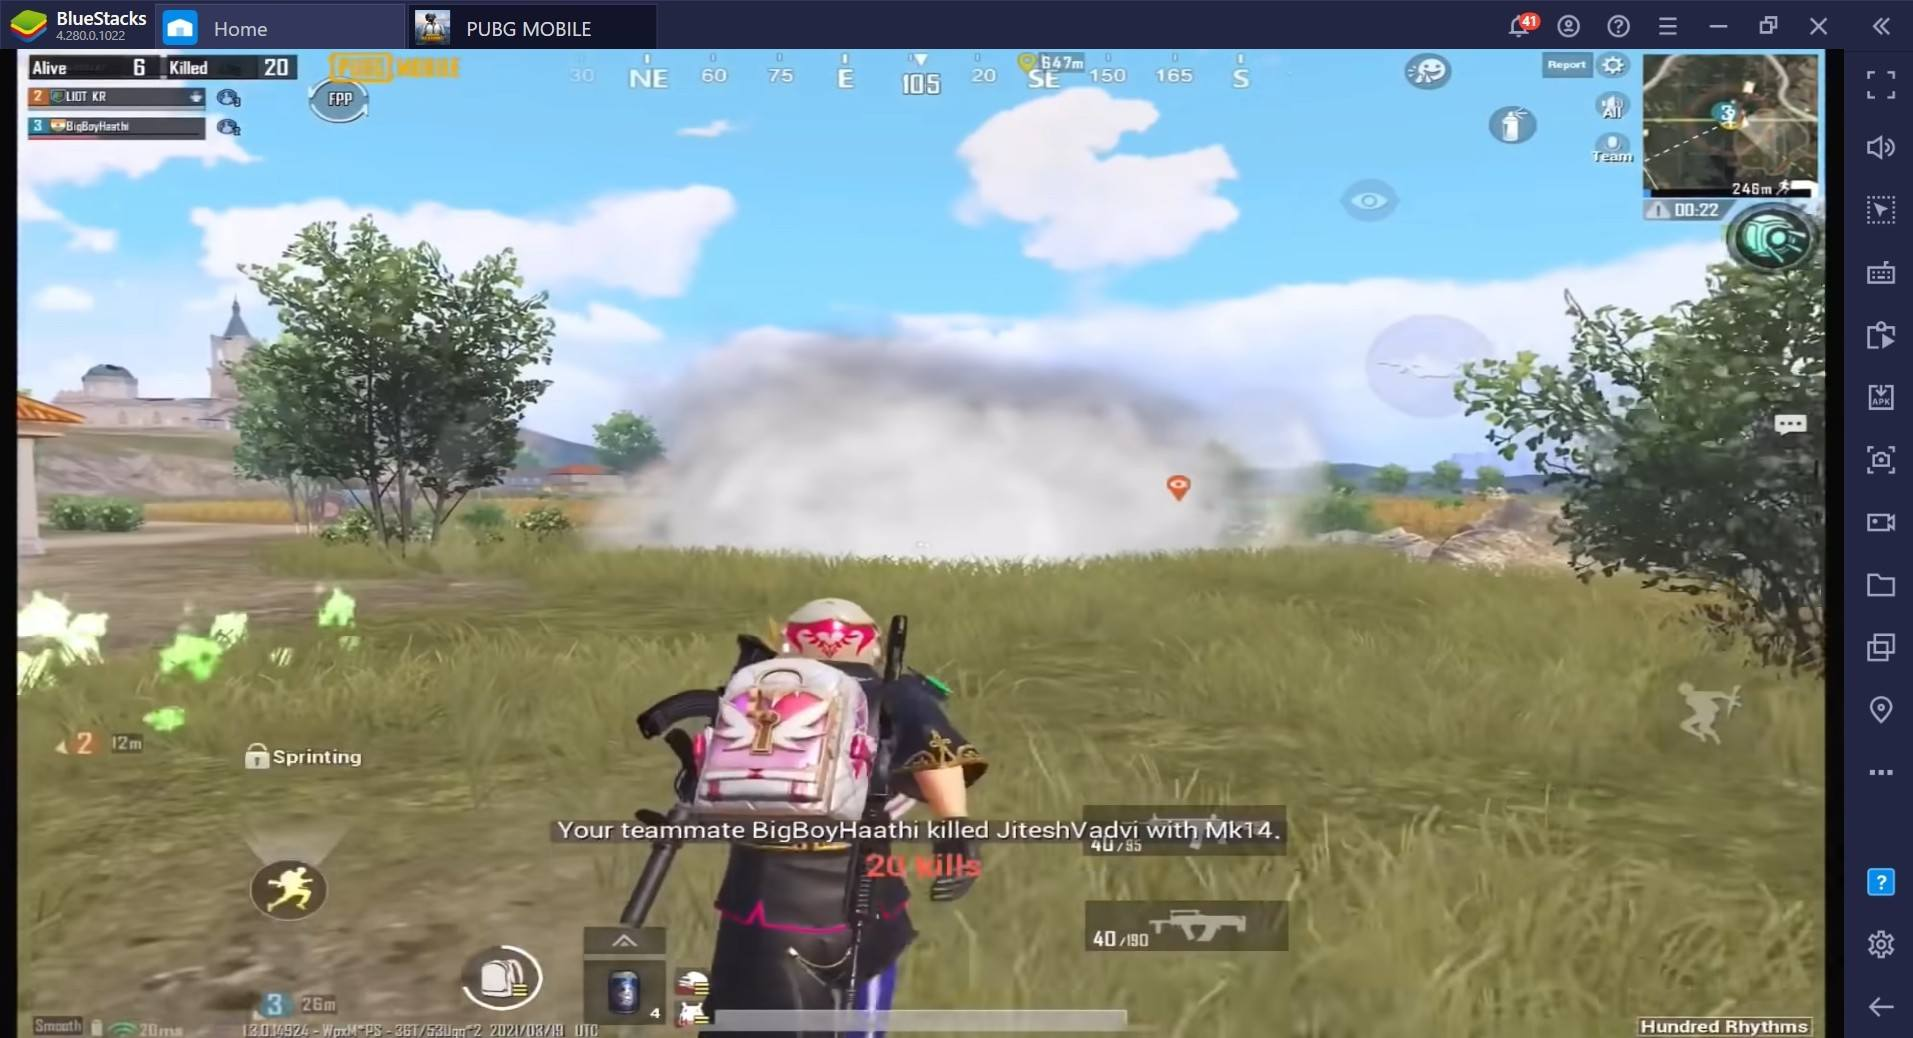 PUBG Mobile: BlueStacks Guide to Playing in Rozhok